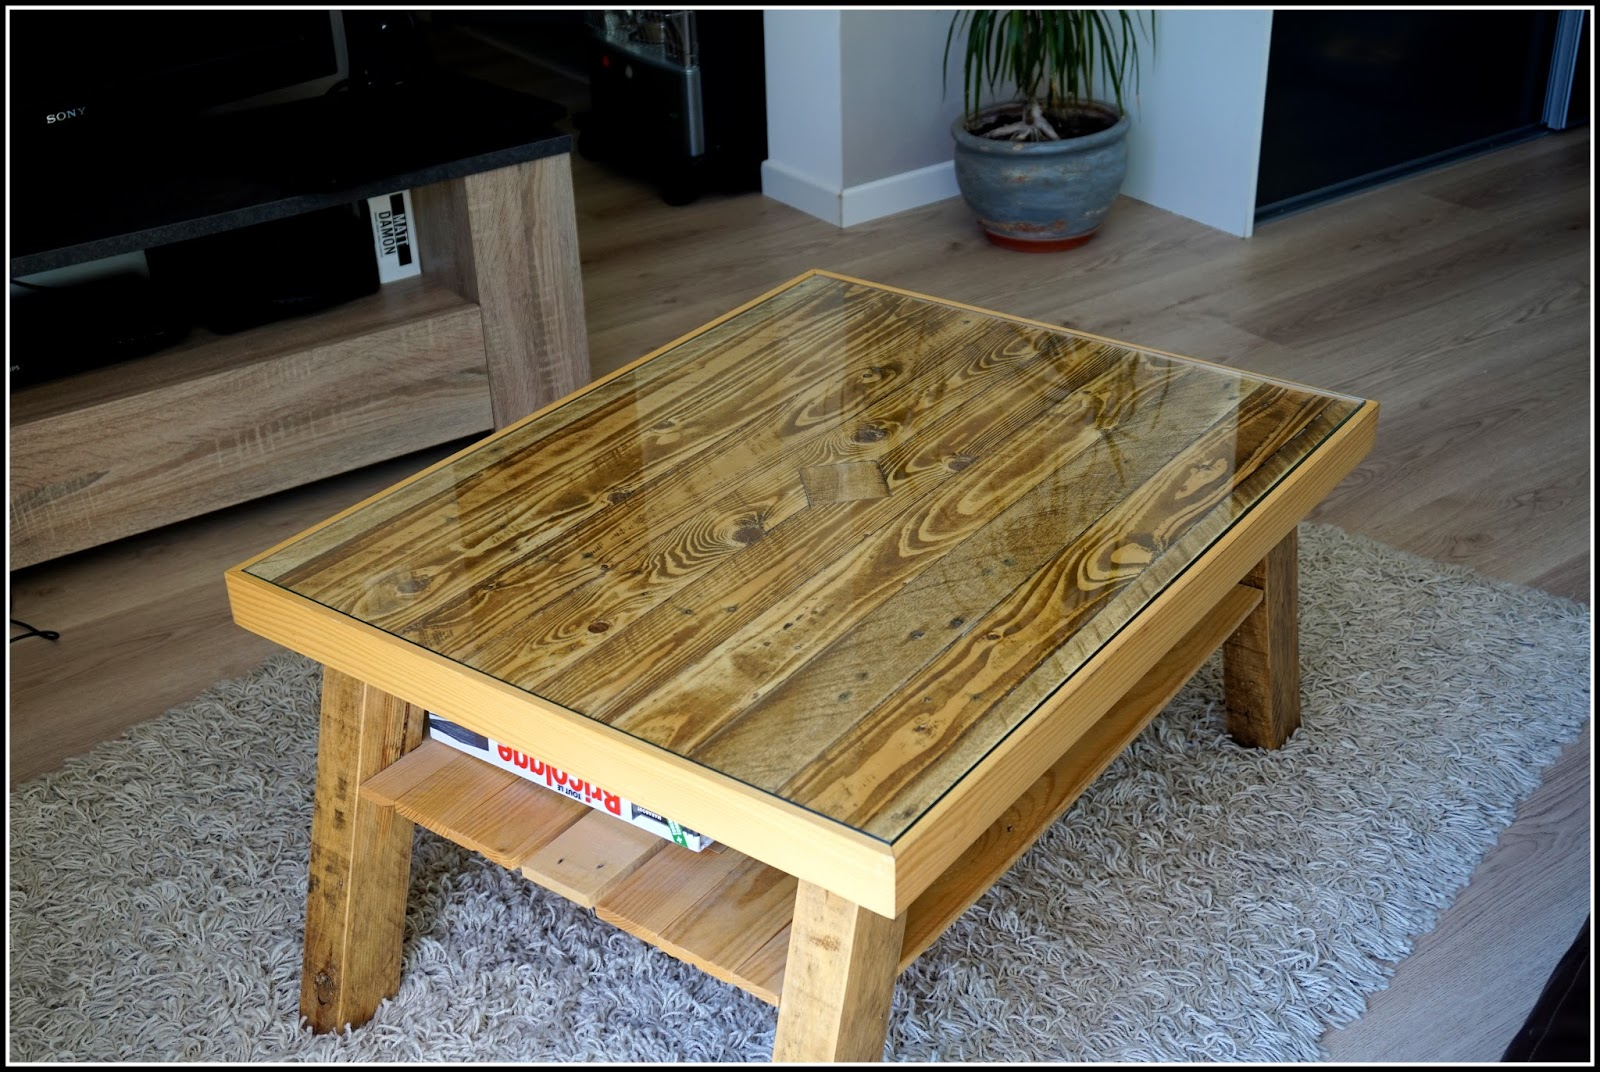 Comment faire une table basse en palette - Comment faire une table en palette ...